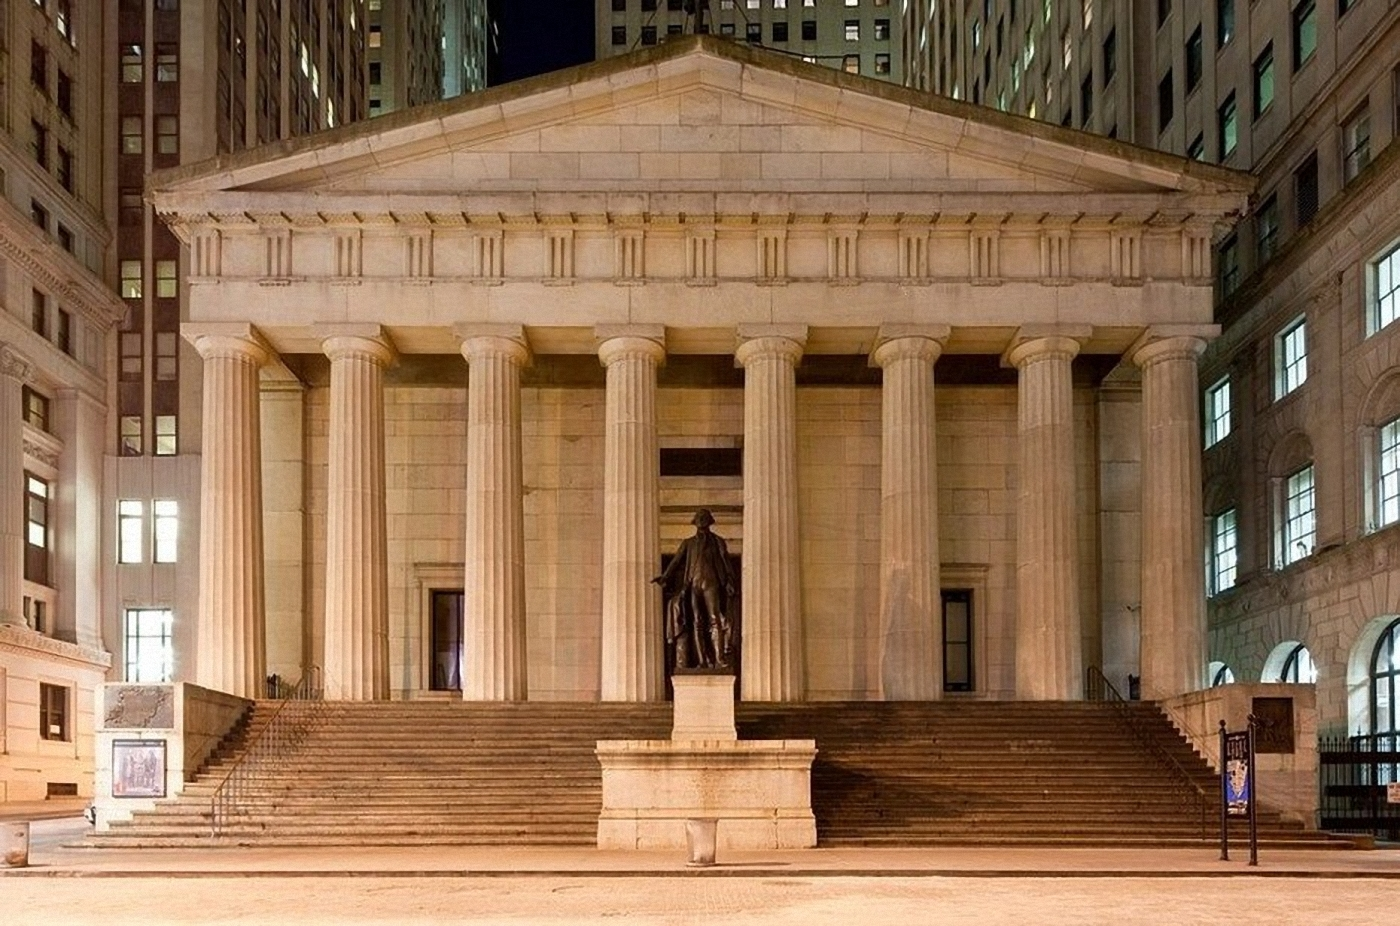 Federal Hall National Memorial in NYC